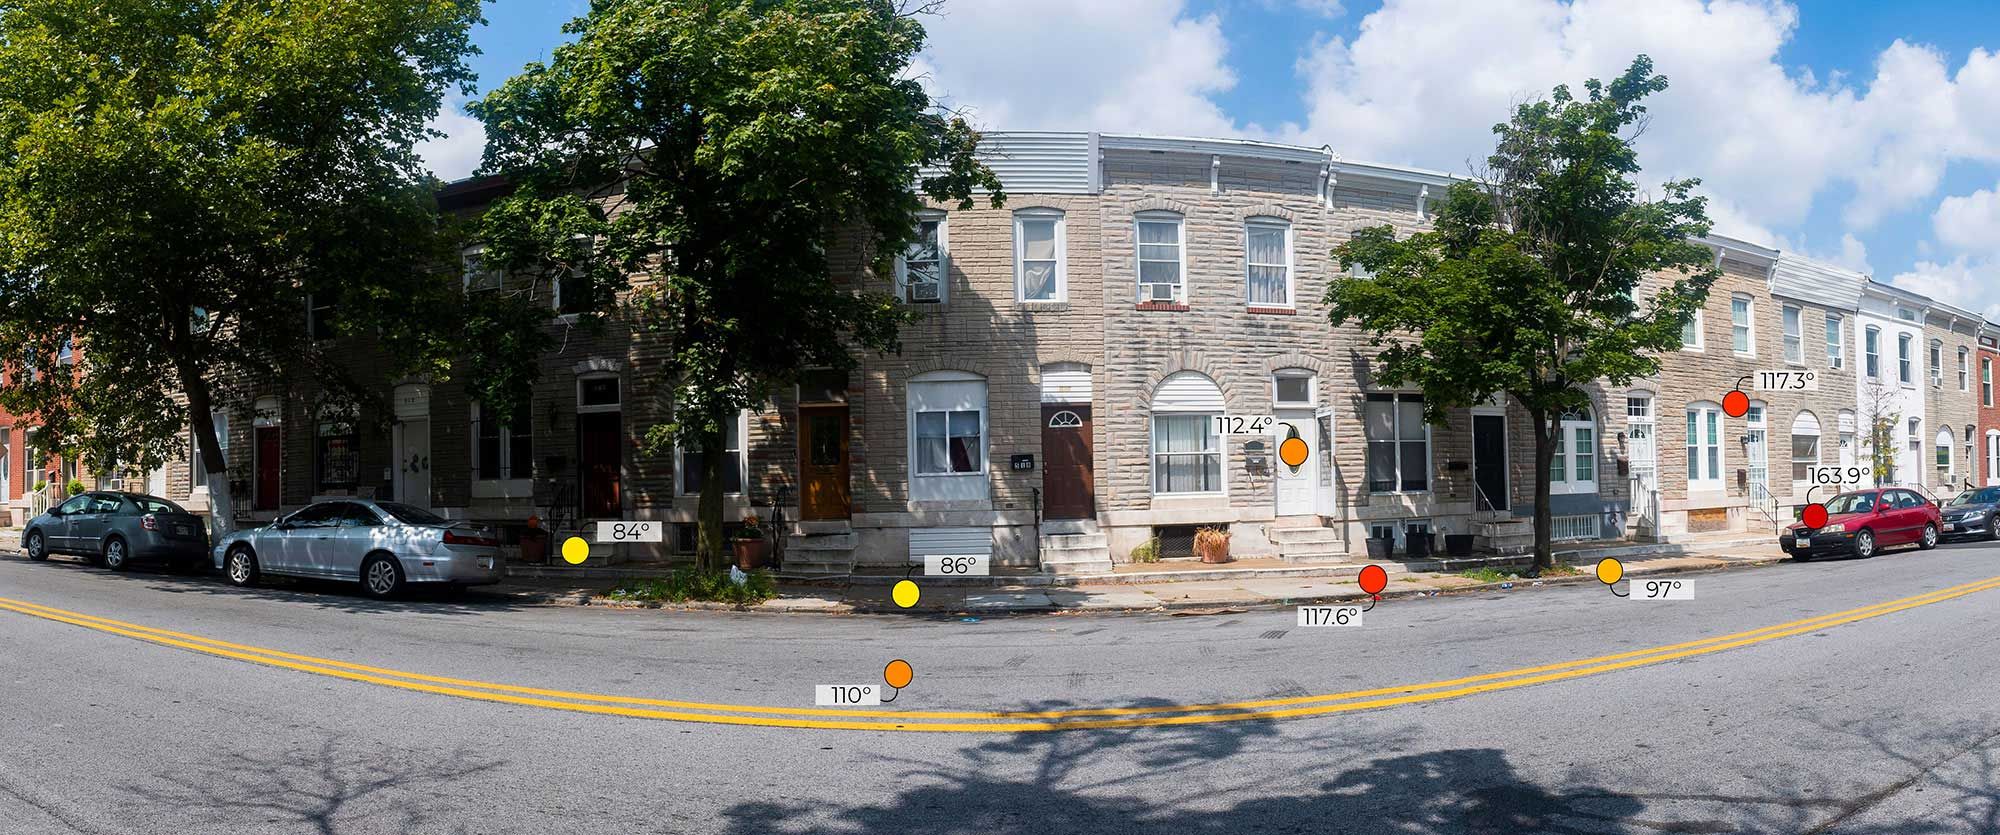 Forward Looking Infrared (FLIR) thermal imaging camera reading from 500 block of North Milton Street, Baltimore, MD, on August 1, 2019 at 11:20 a.m.